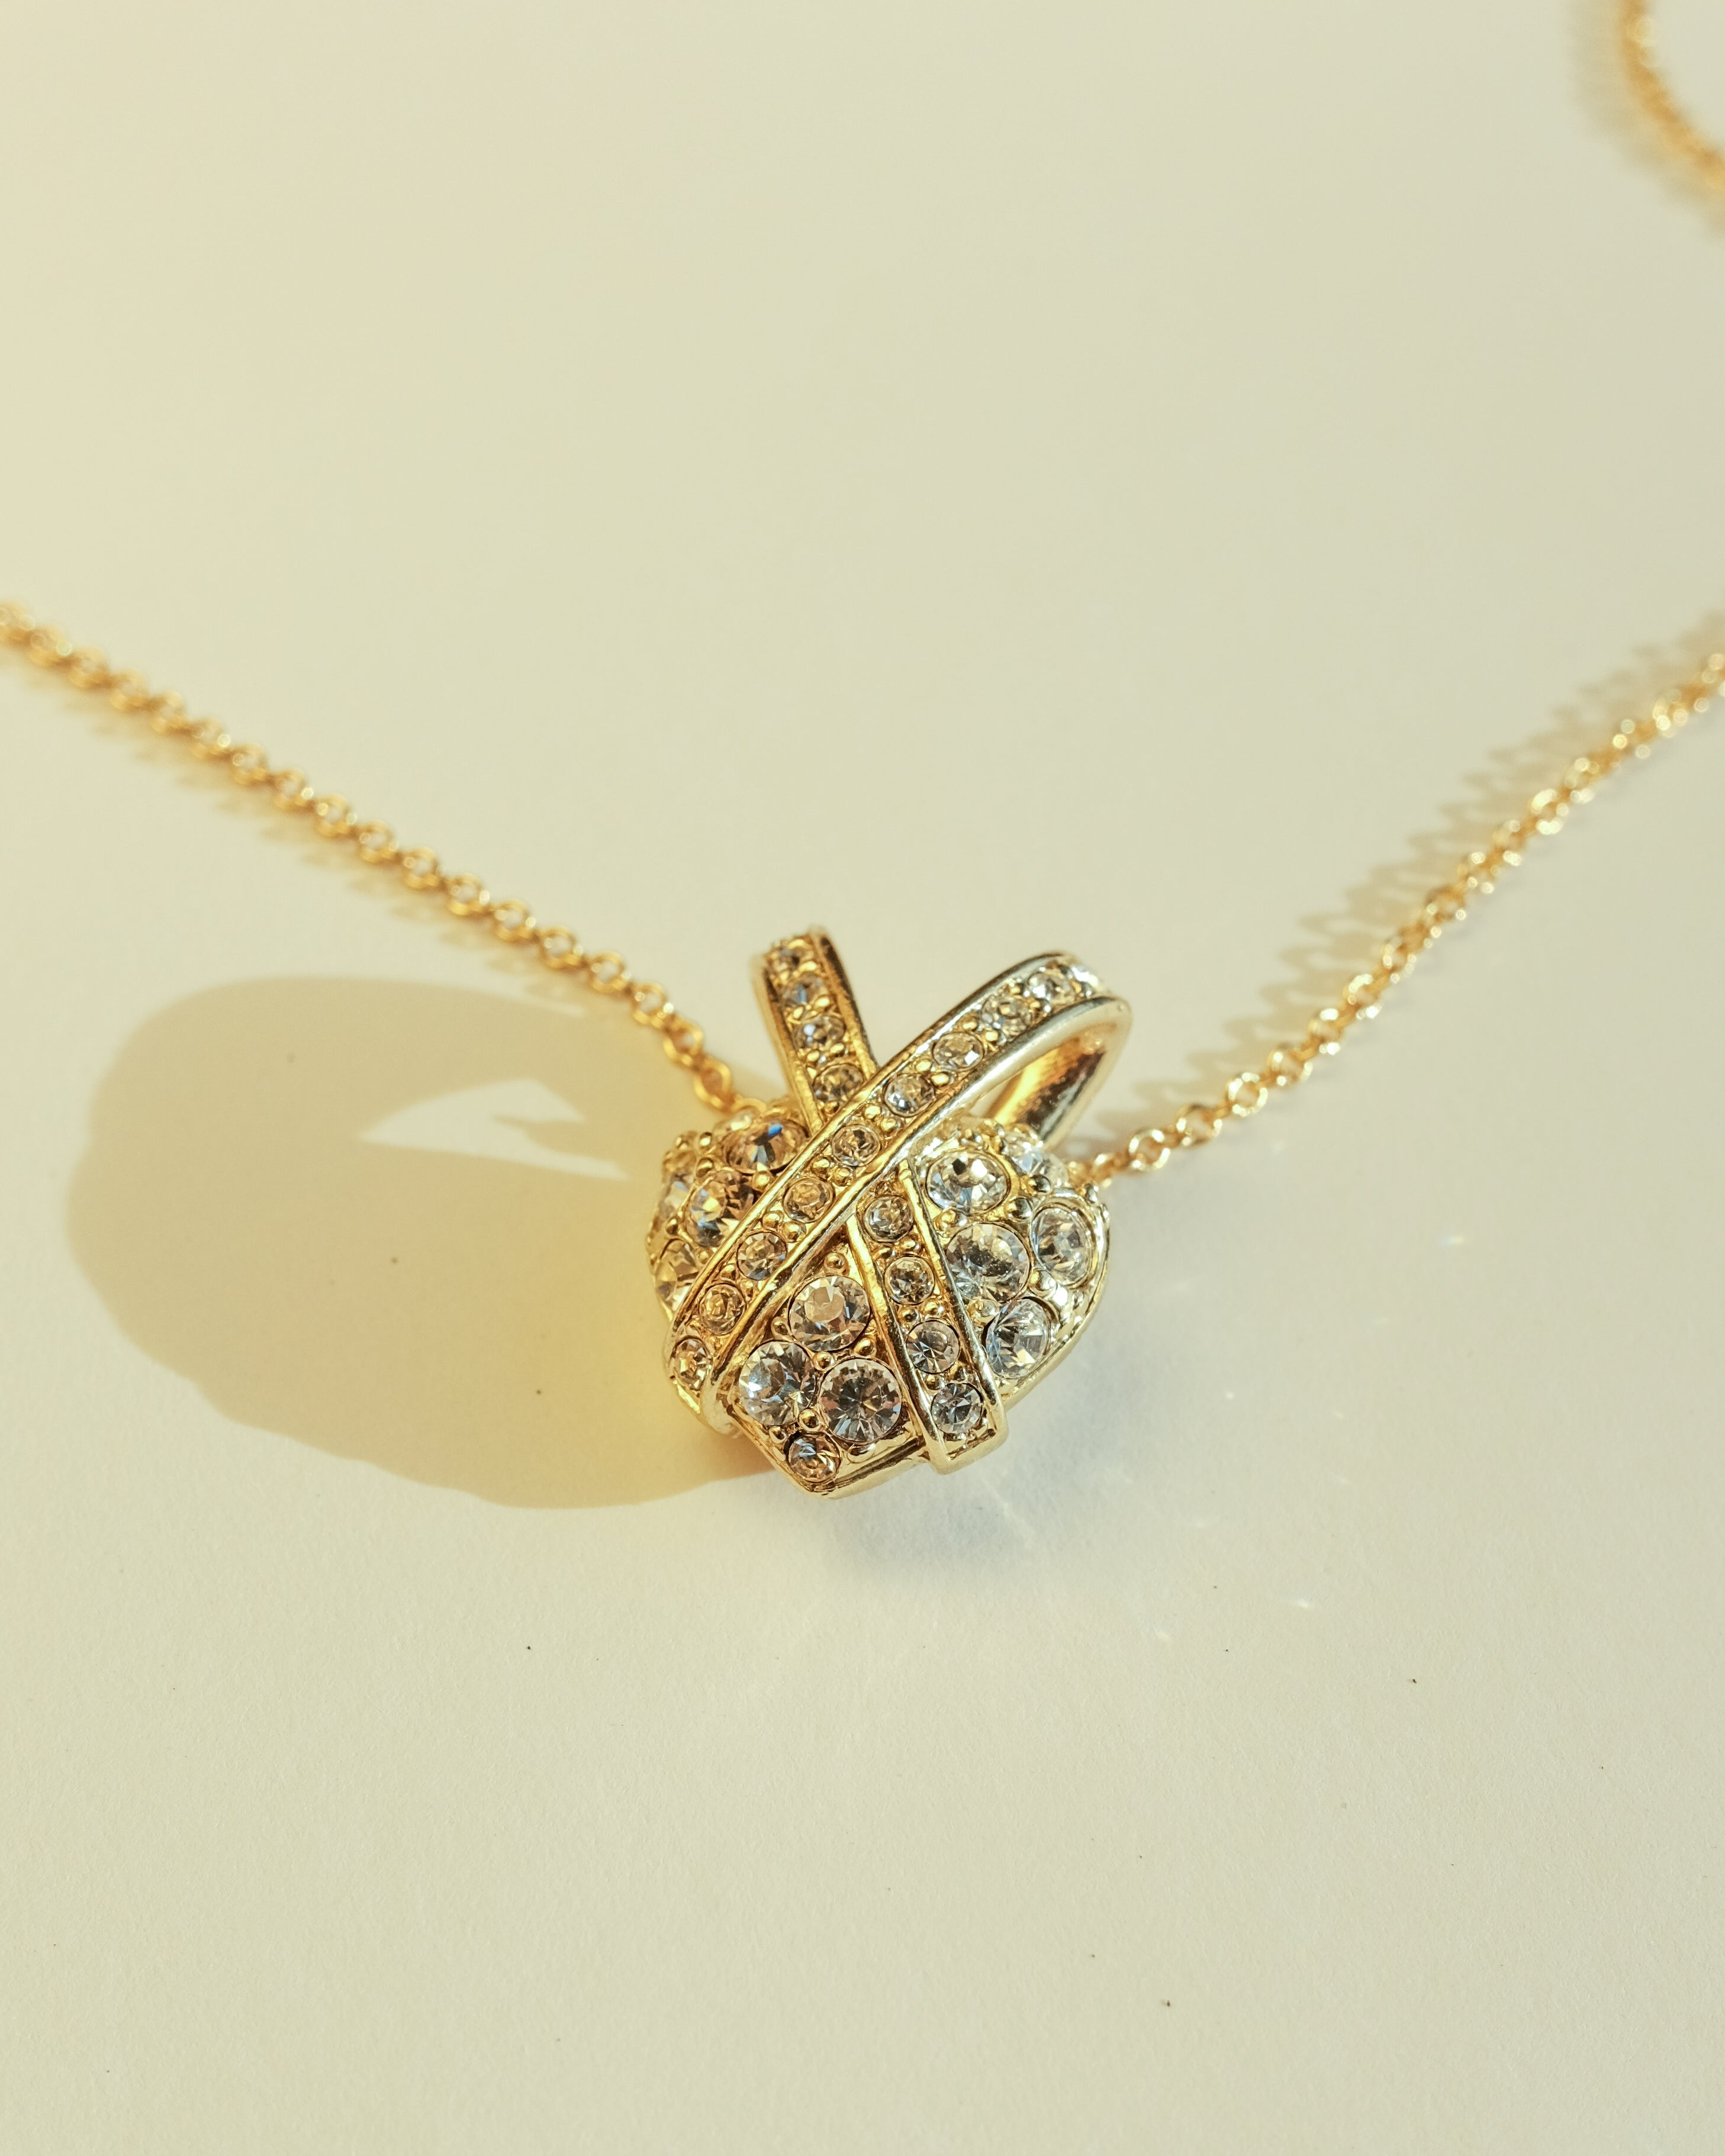 VINTAGE NOLAN MILLER HEART NECKLACE WITH CLEAR AUSTRIAN CRYSTALS